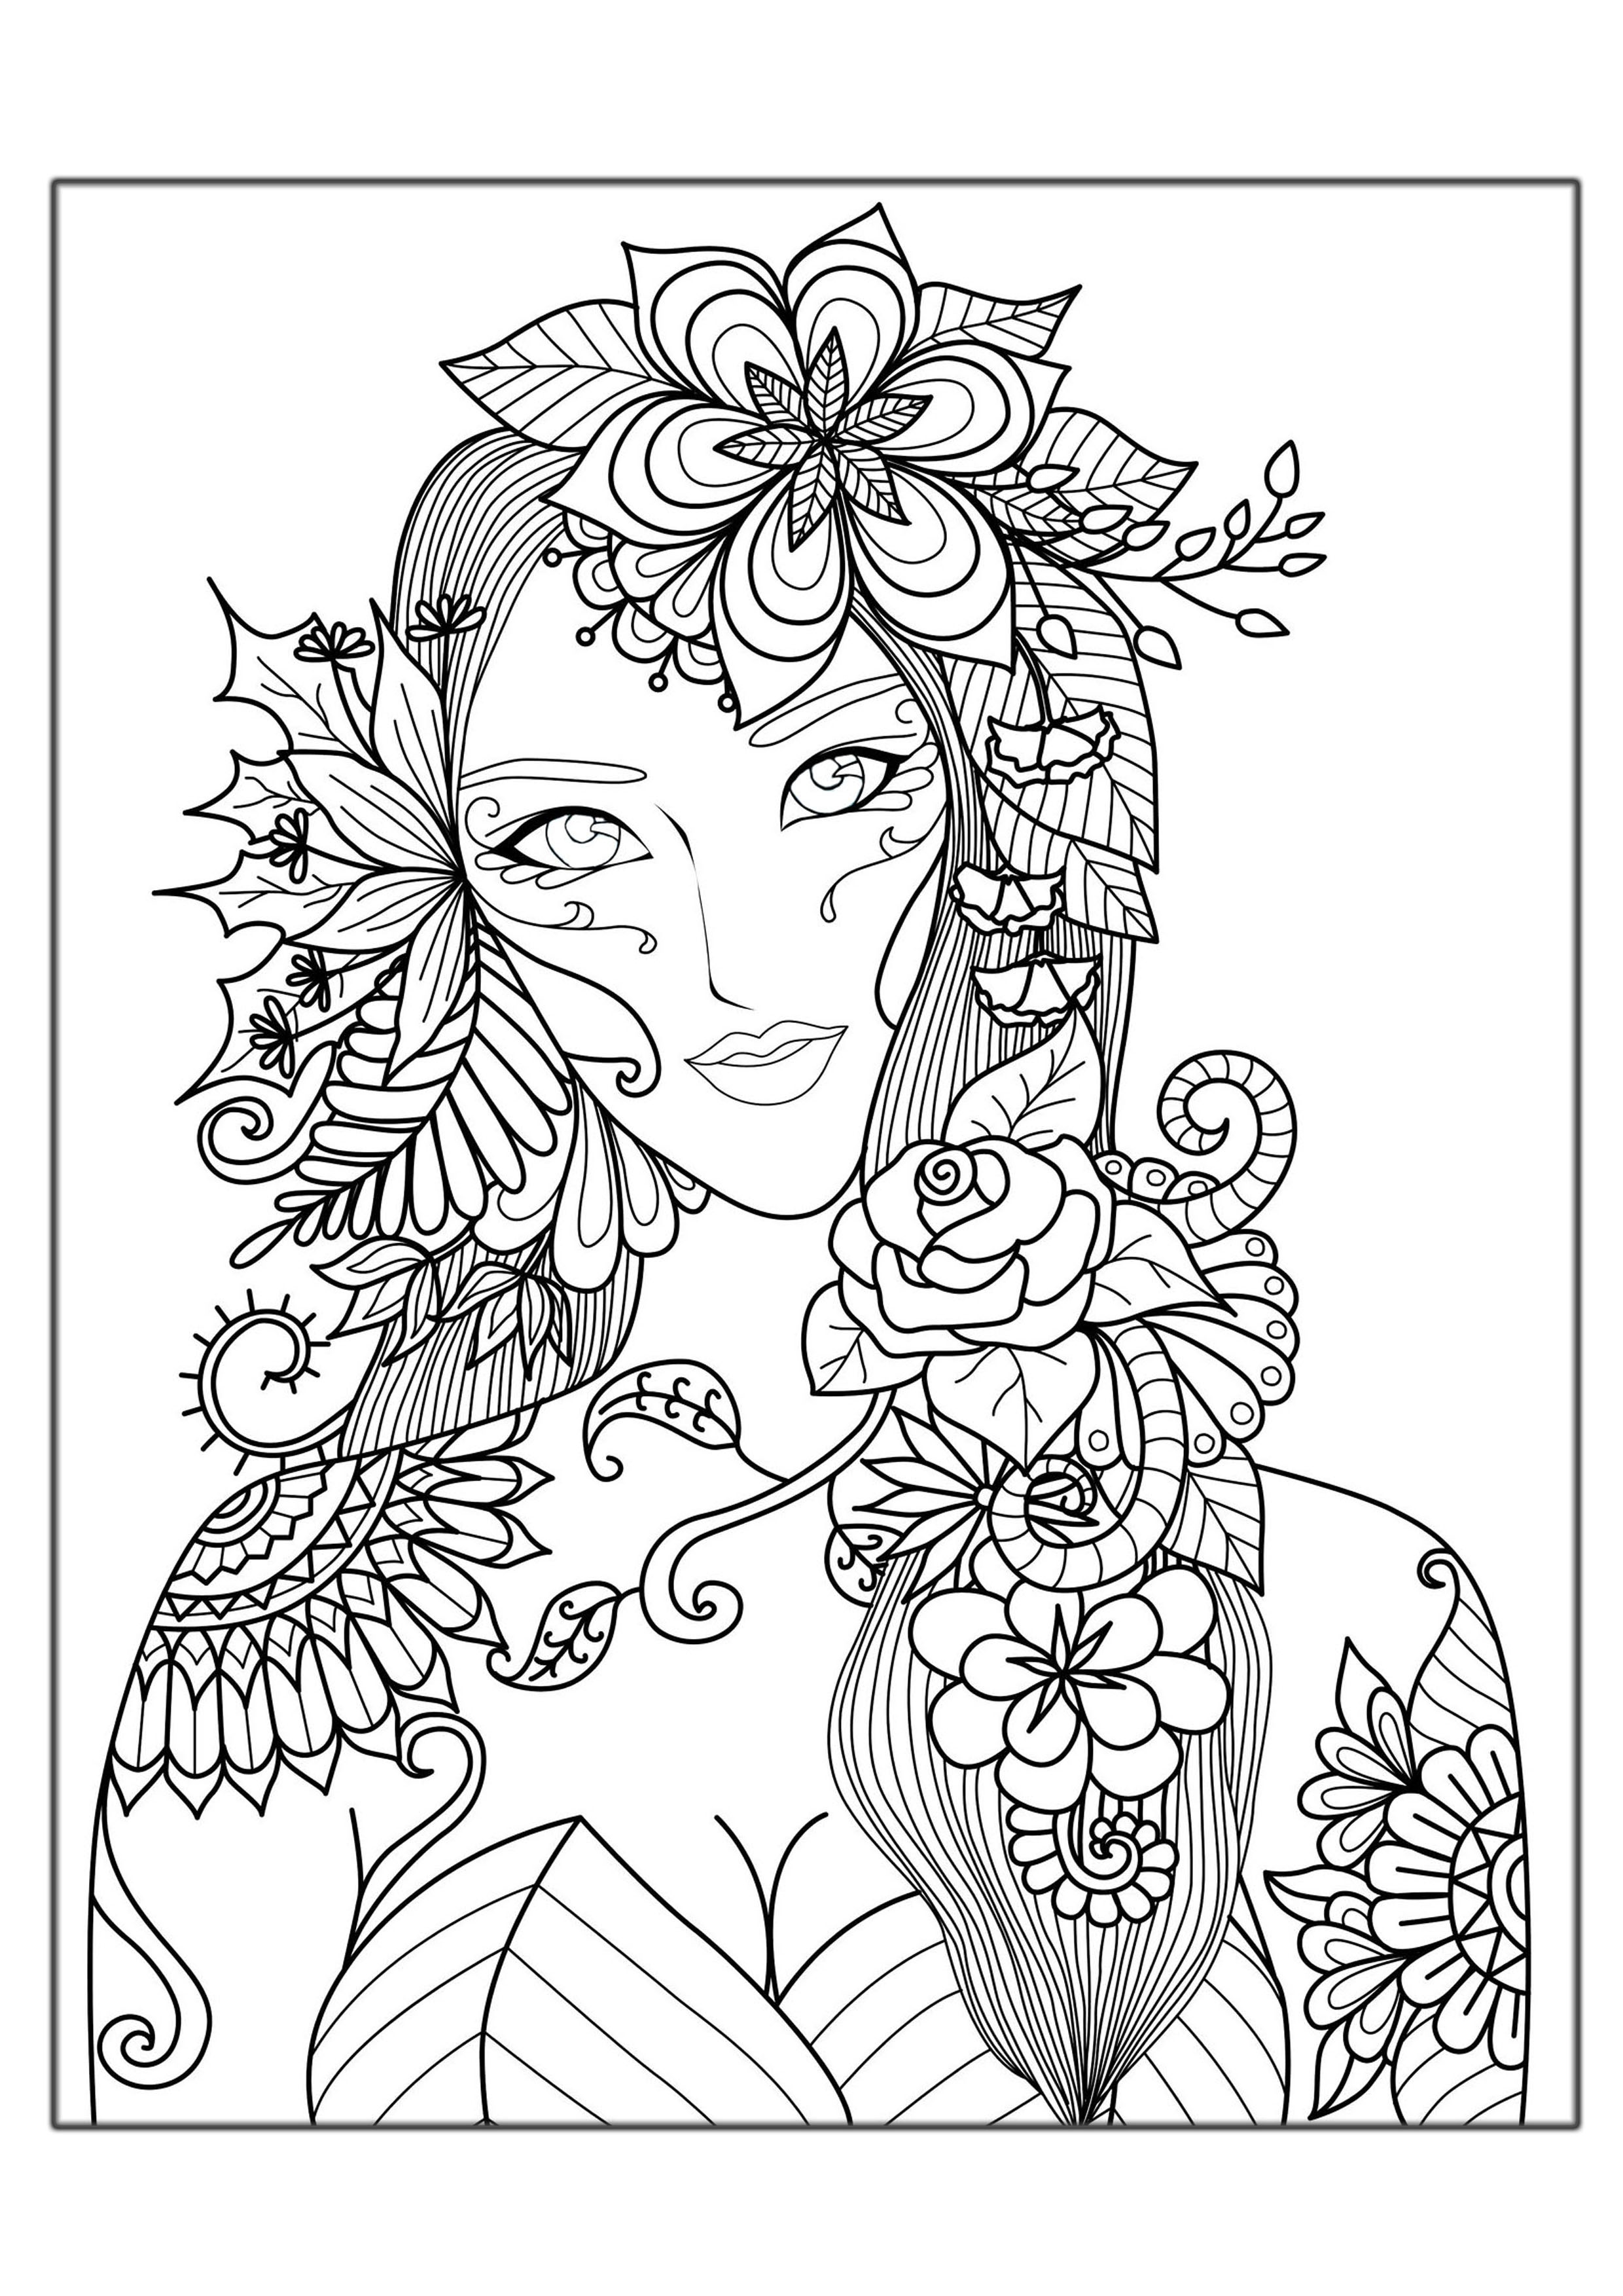 coloring templates for adults owl coloring pages for adults free detailed owl coloring templates for adults coloring